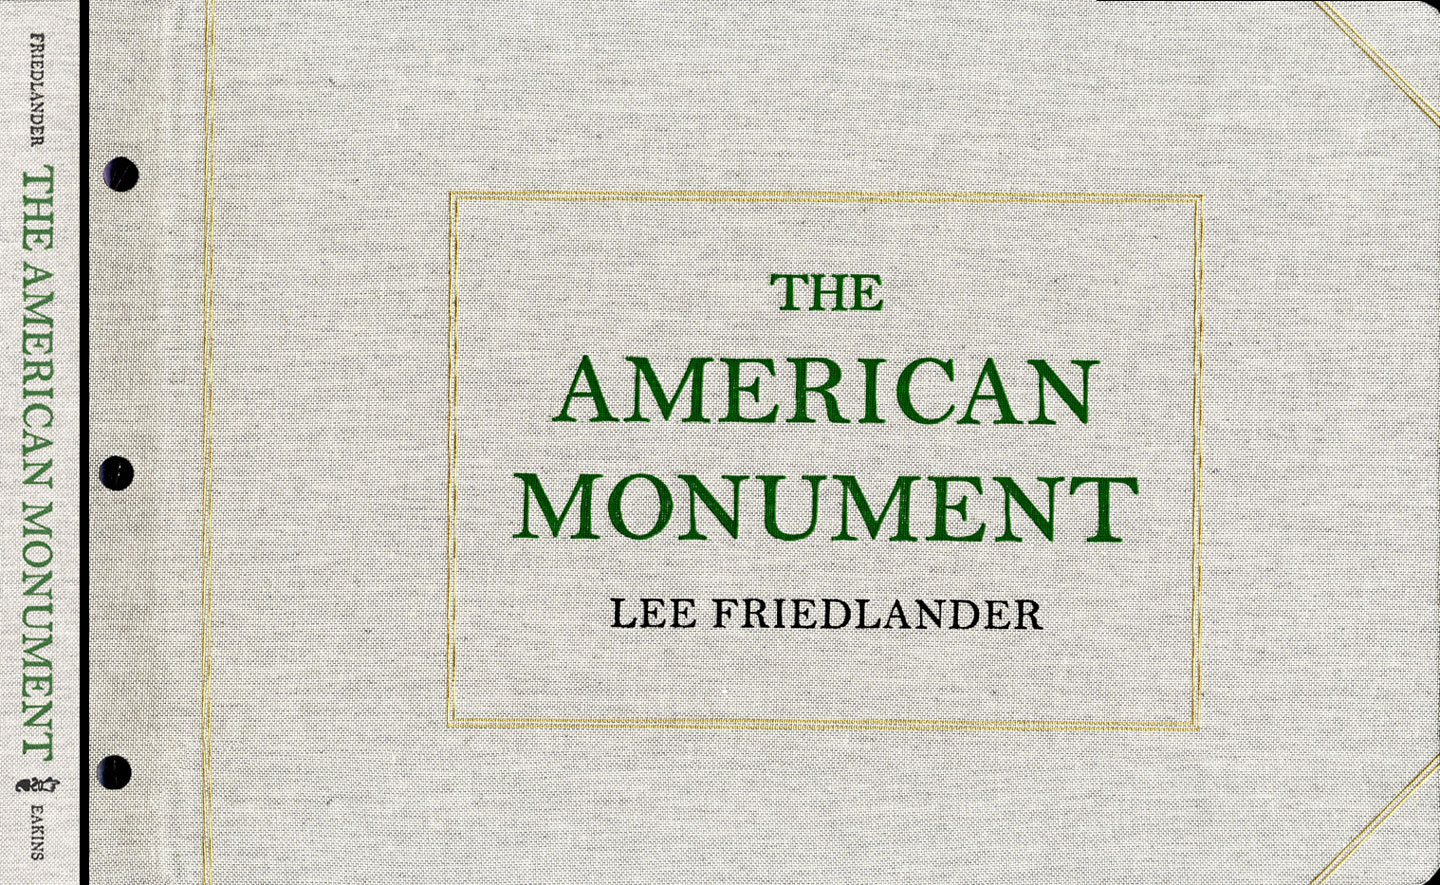 Lee Friedlander: The American Monument (Eakins Press Reissue)